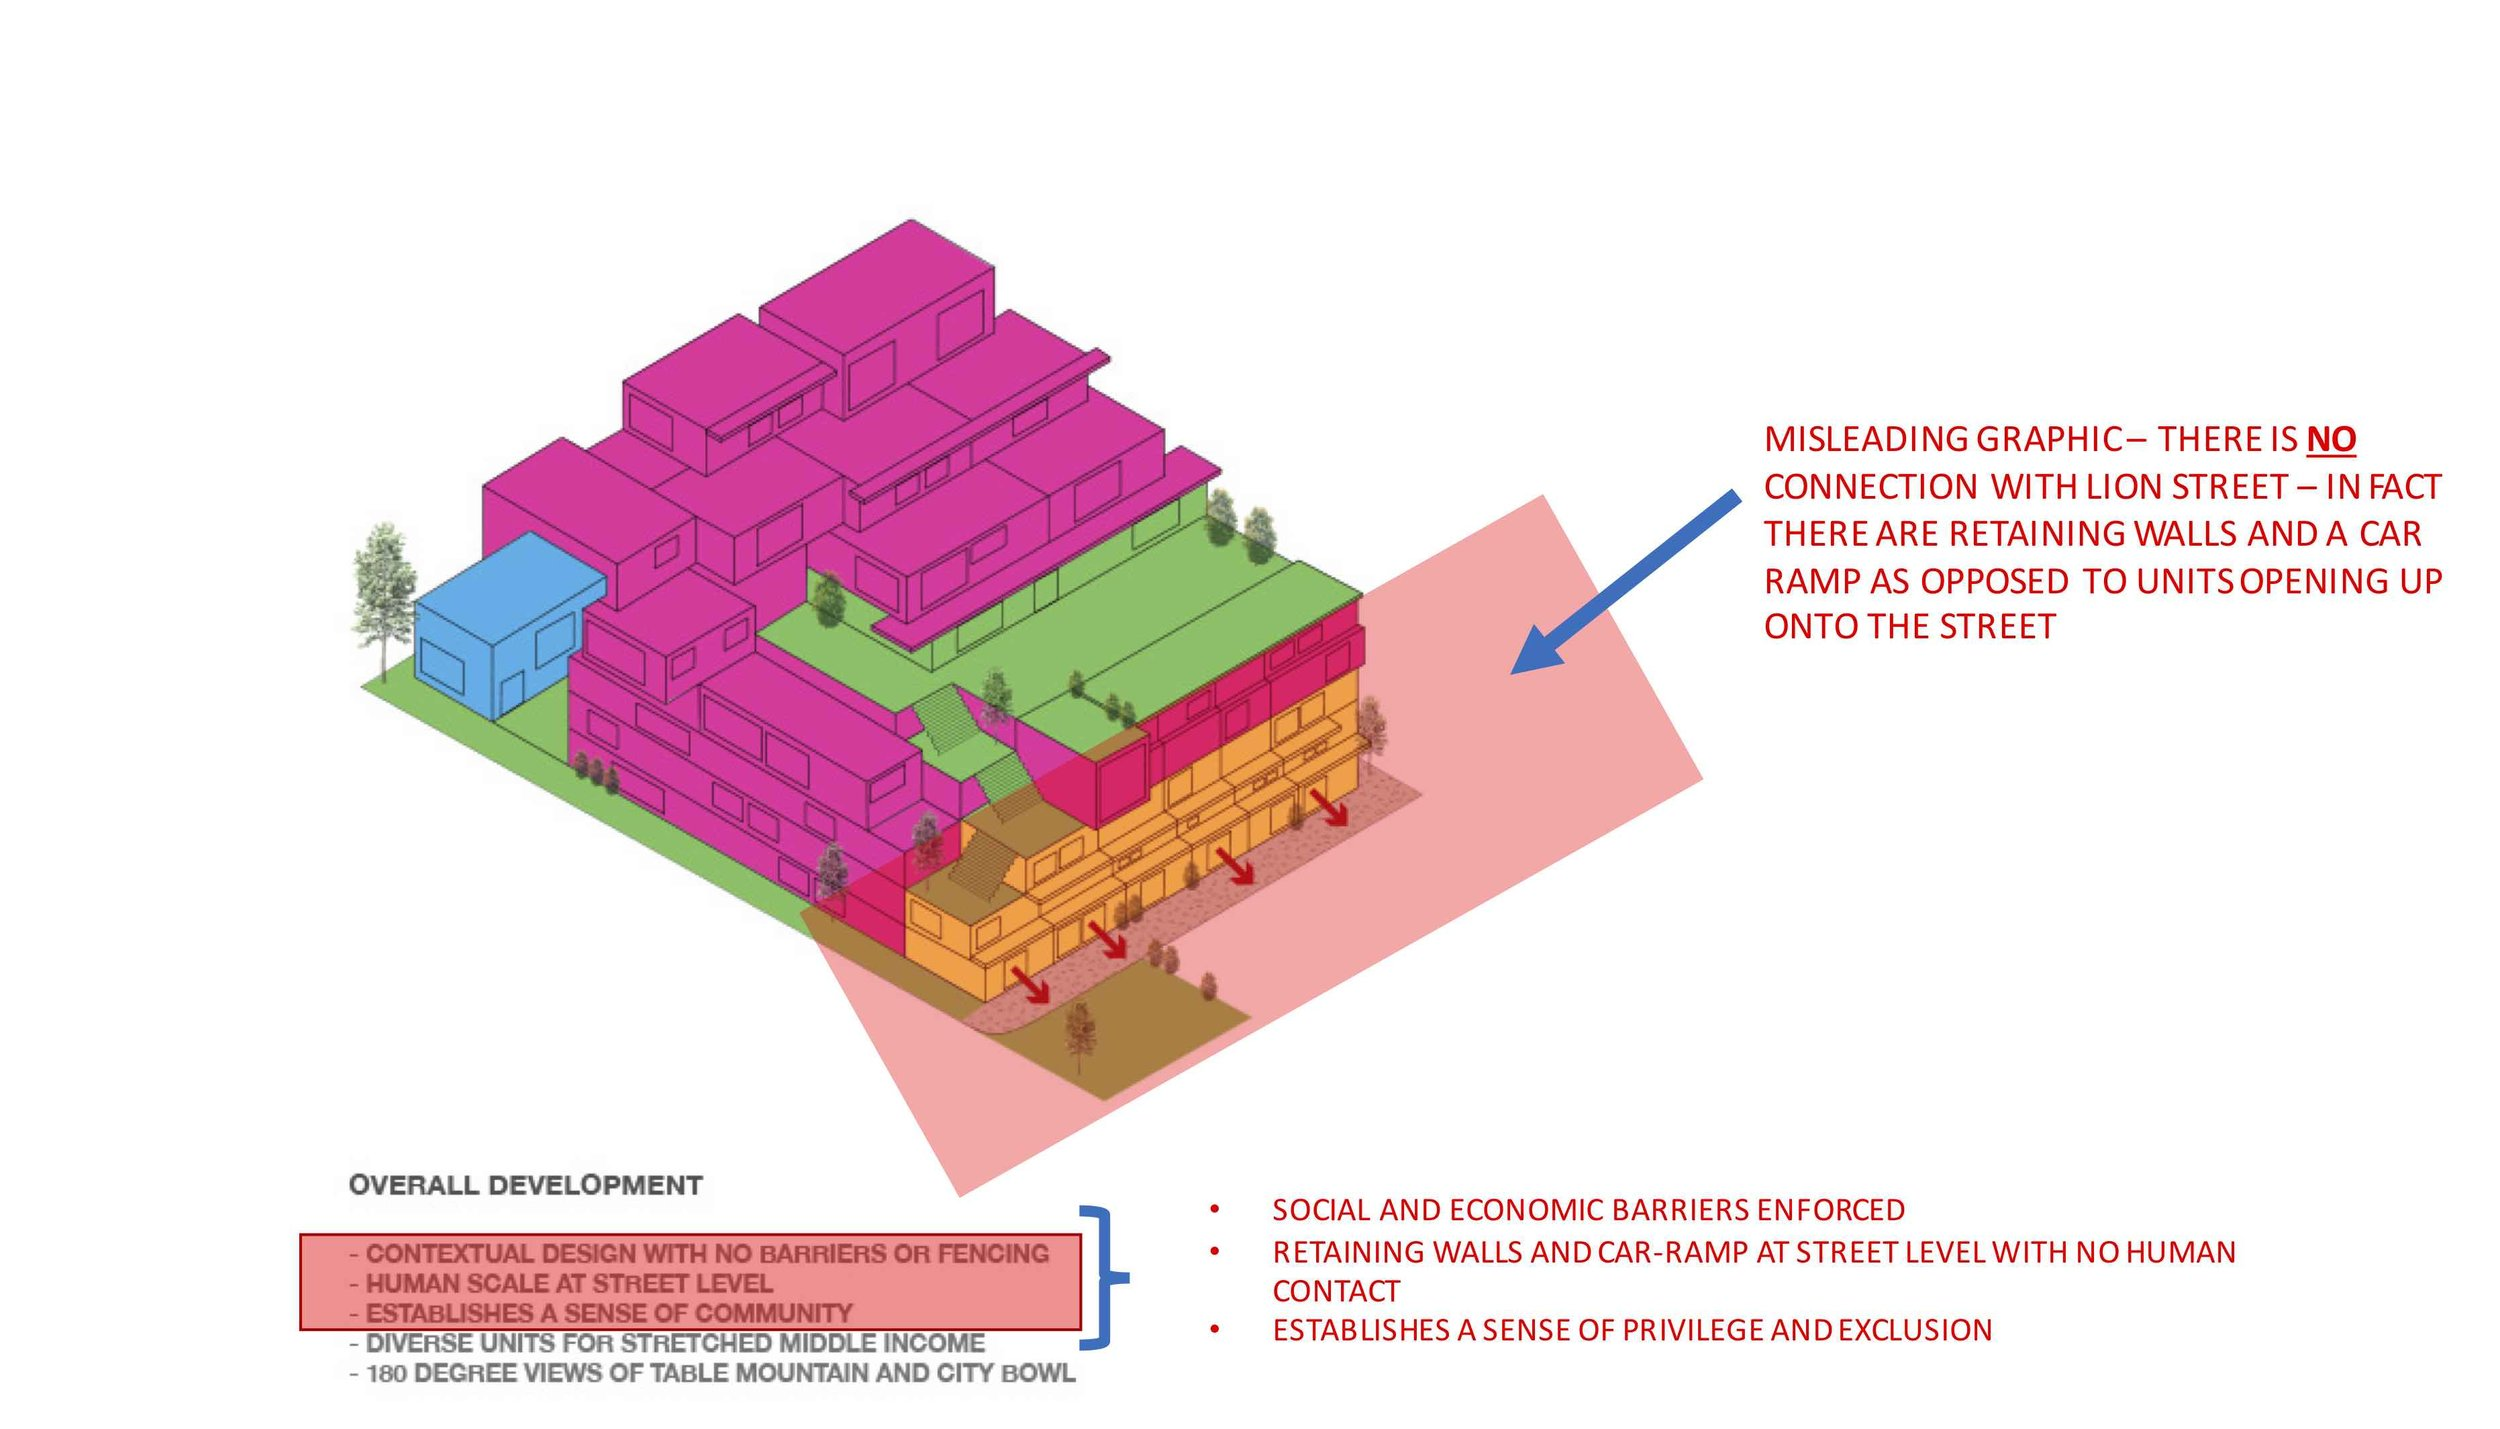 Image is from the development infographic - http://www.blok.co.za/80-20